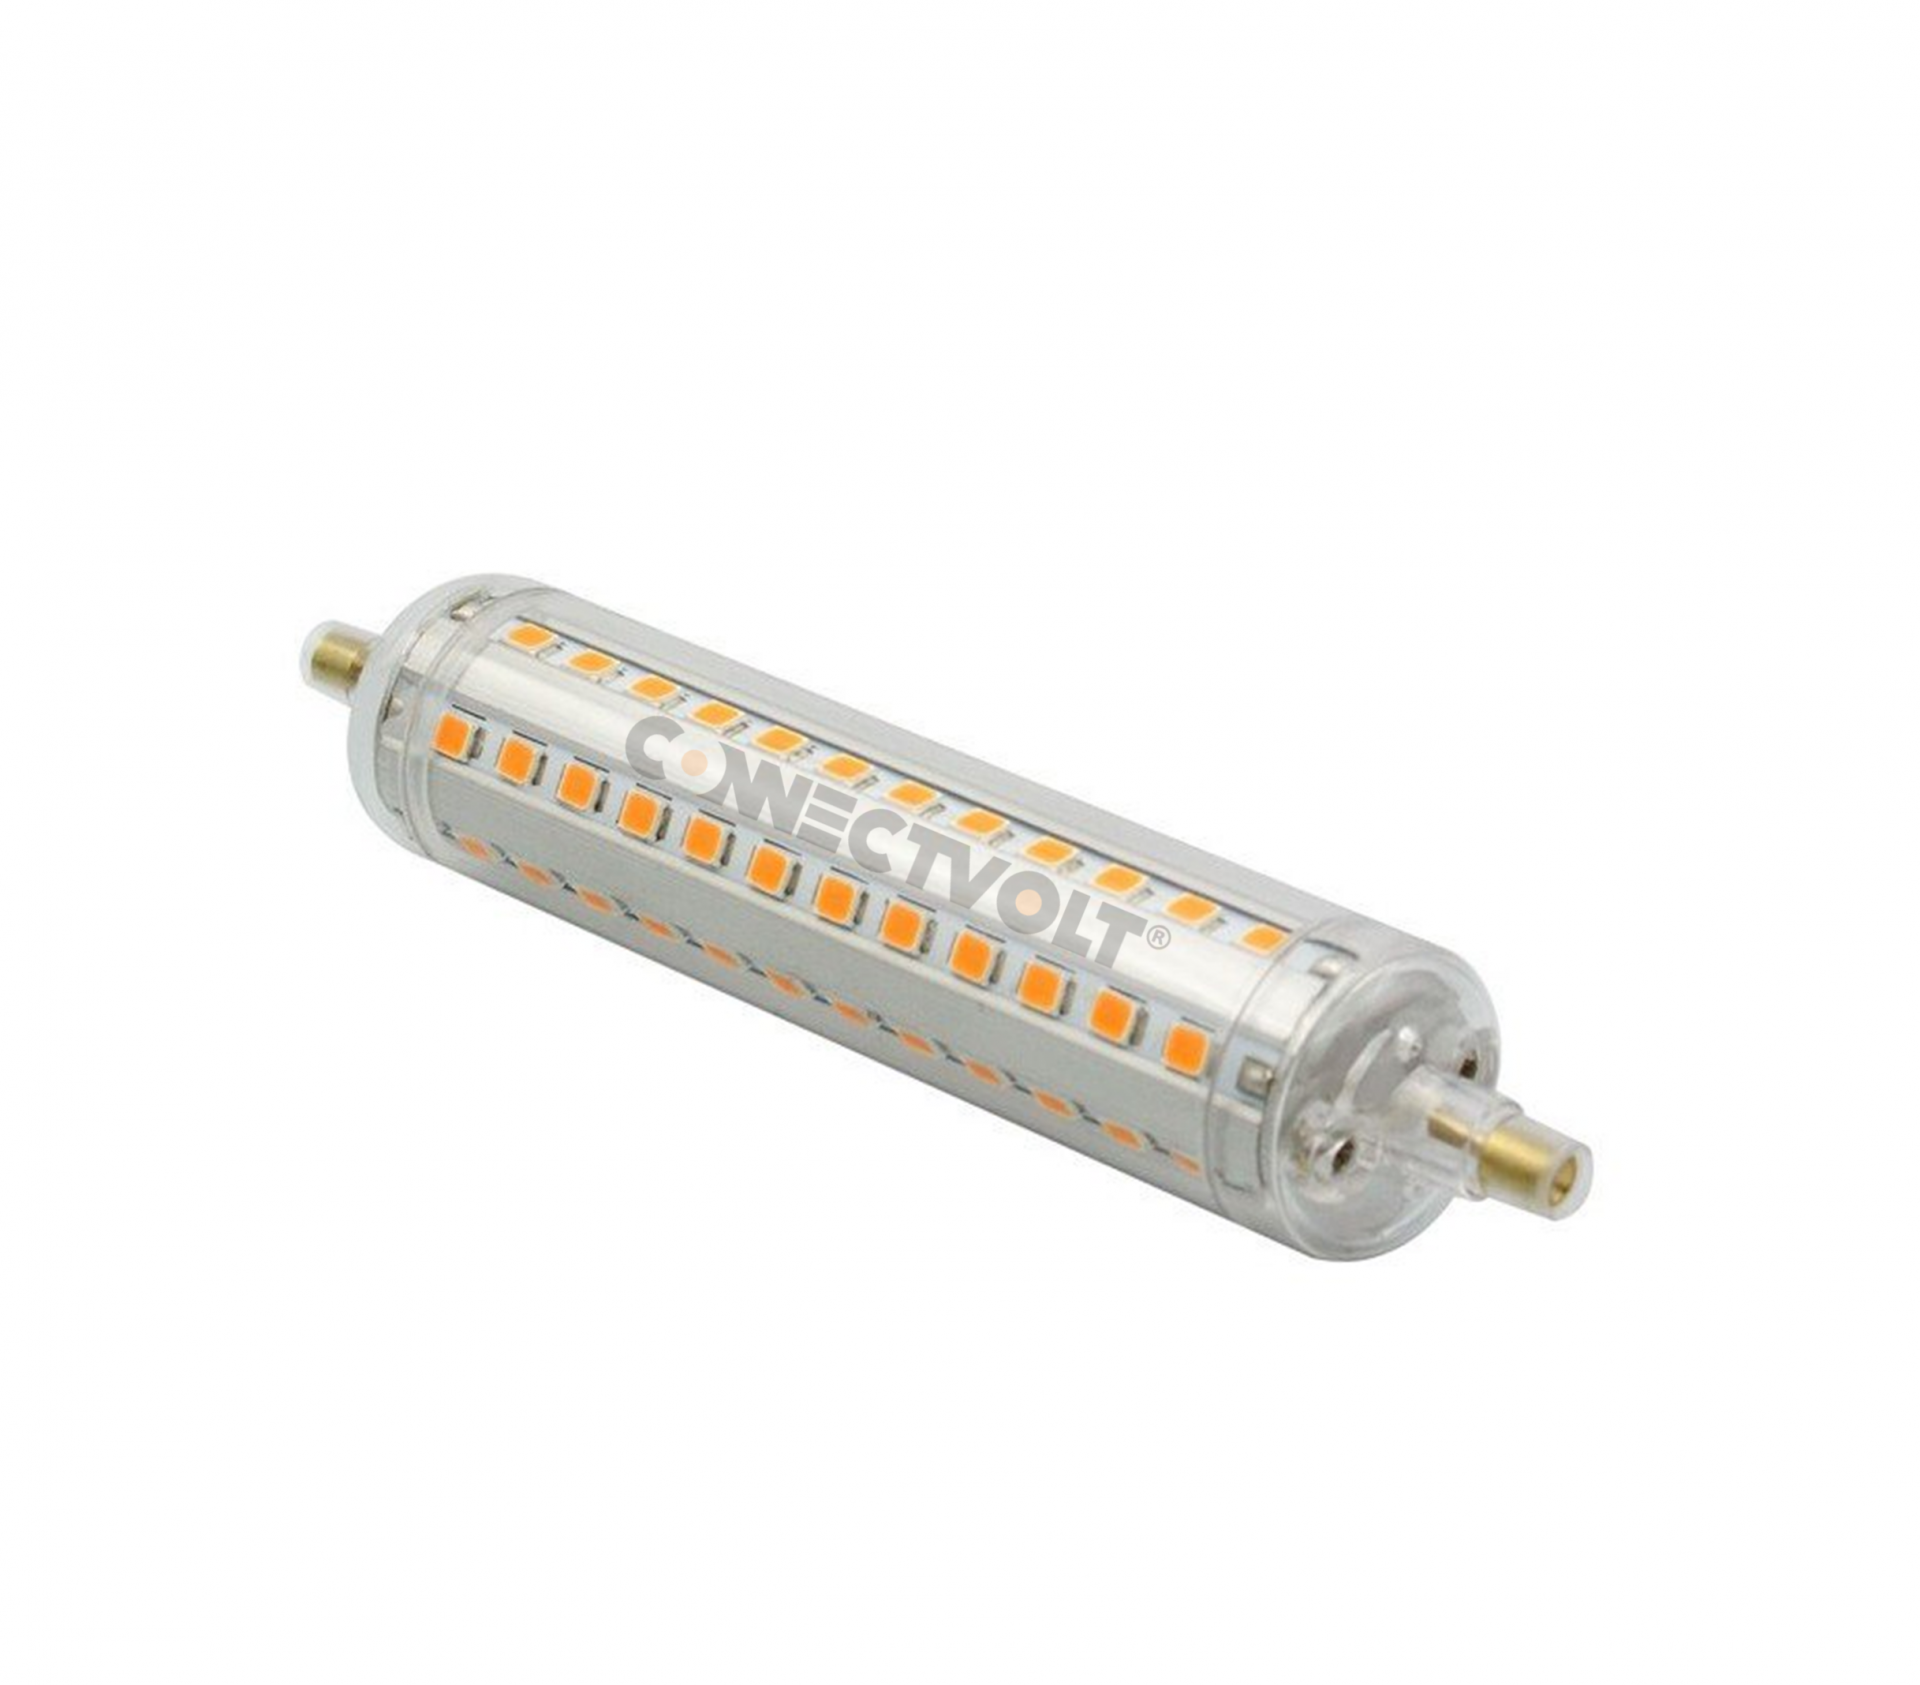 LED Lâmpada R7S 18W 189mm